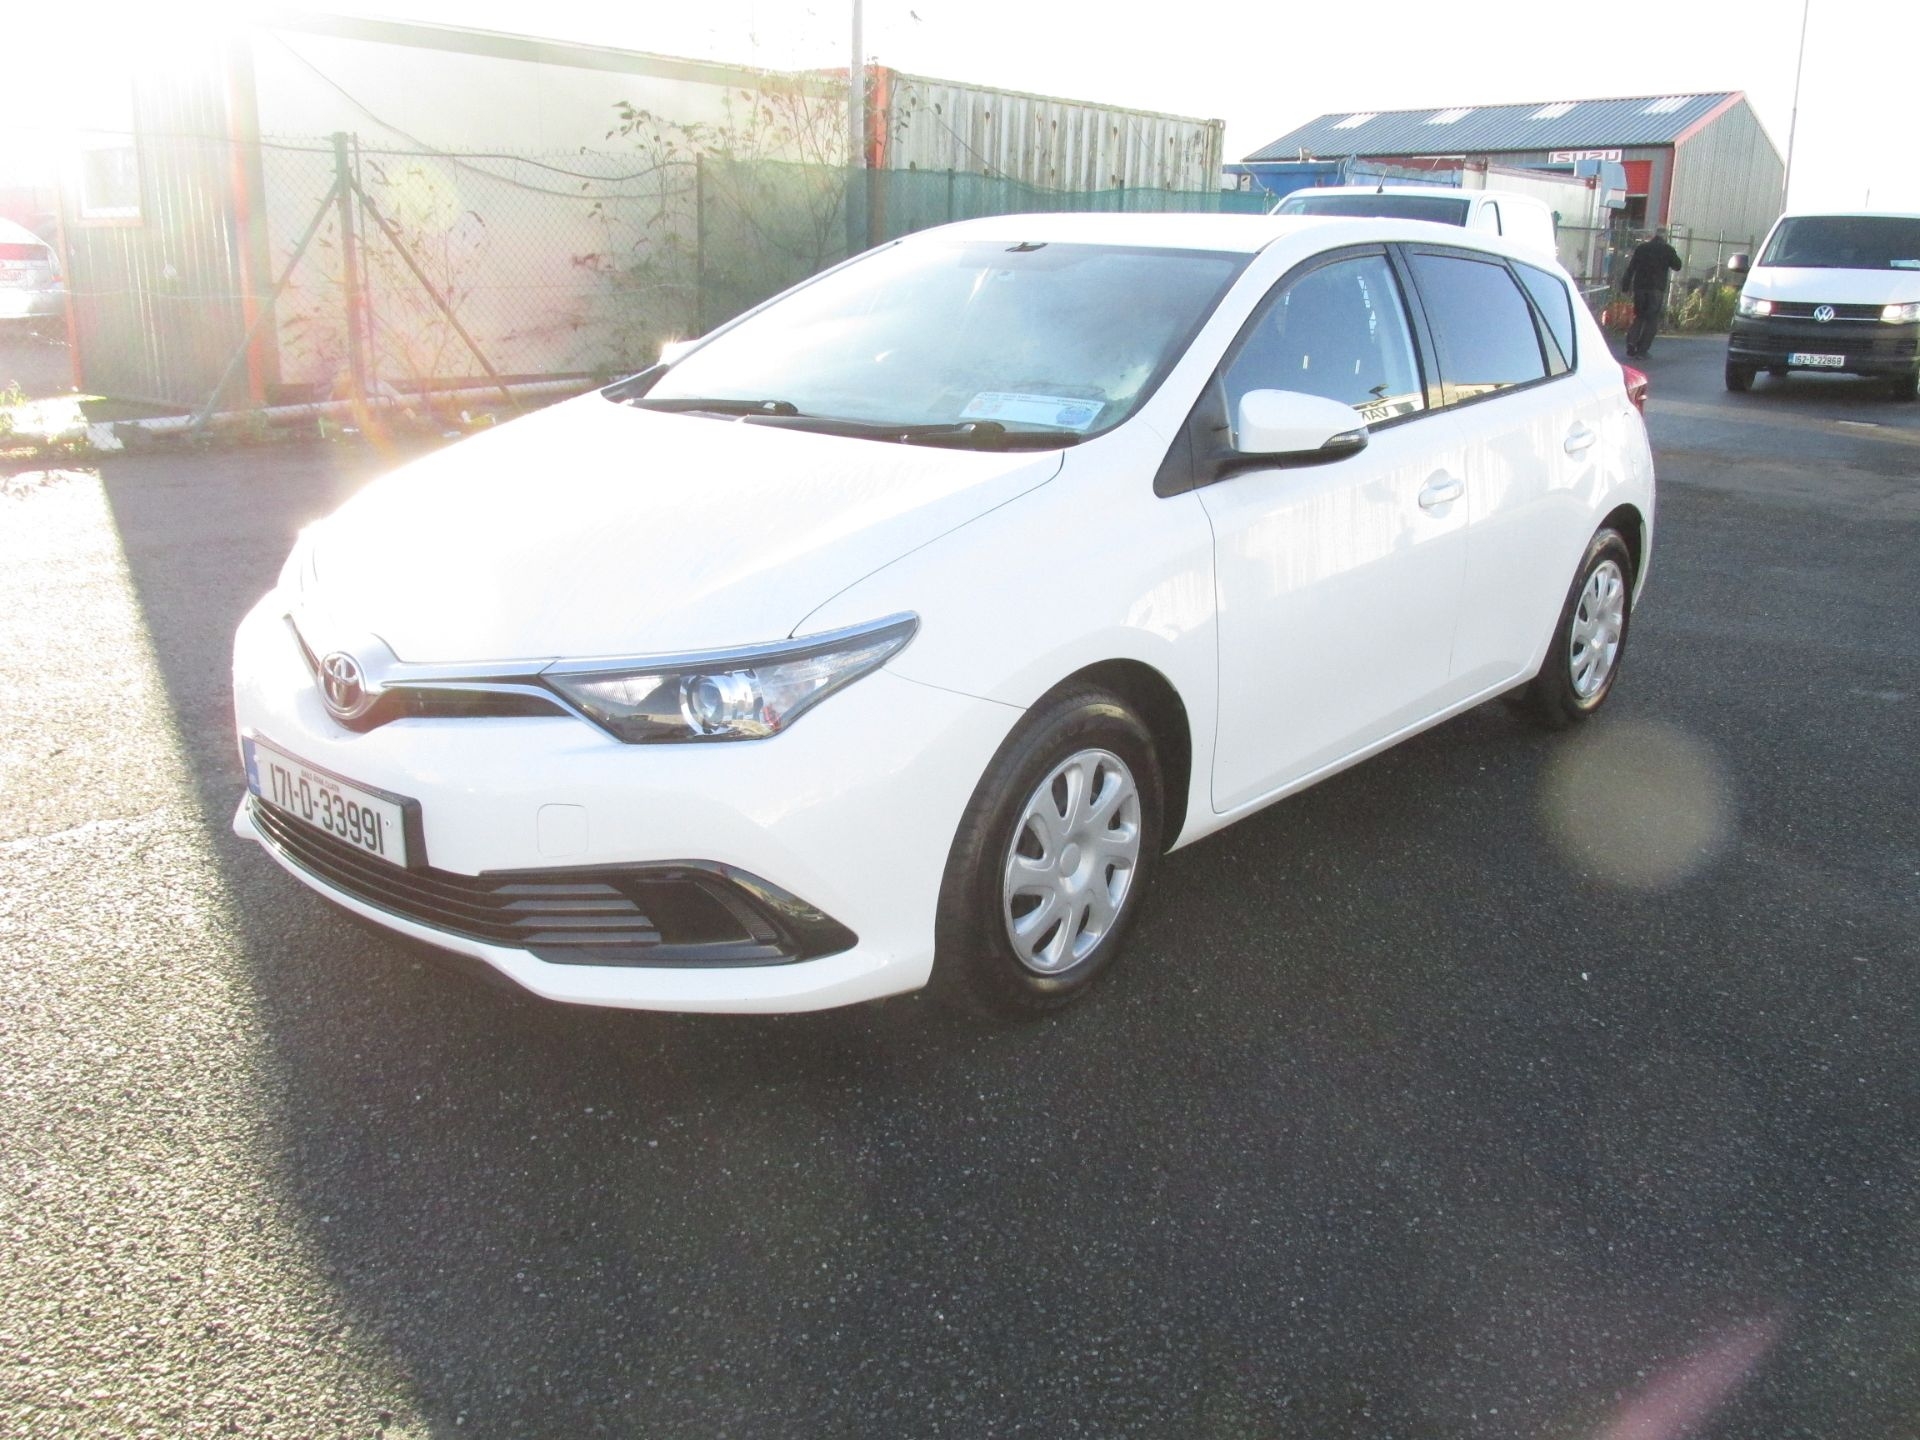 2017 Toyota Auris 1.4d-4d Terra 4DR click and collect call sales for more info (171D33991) Image 3